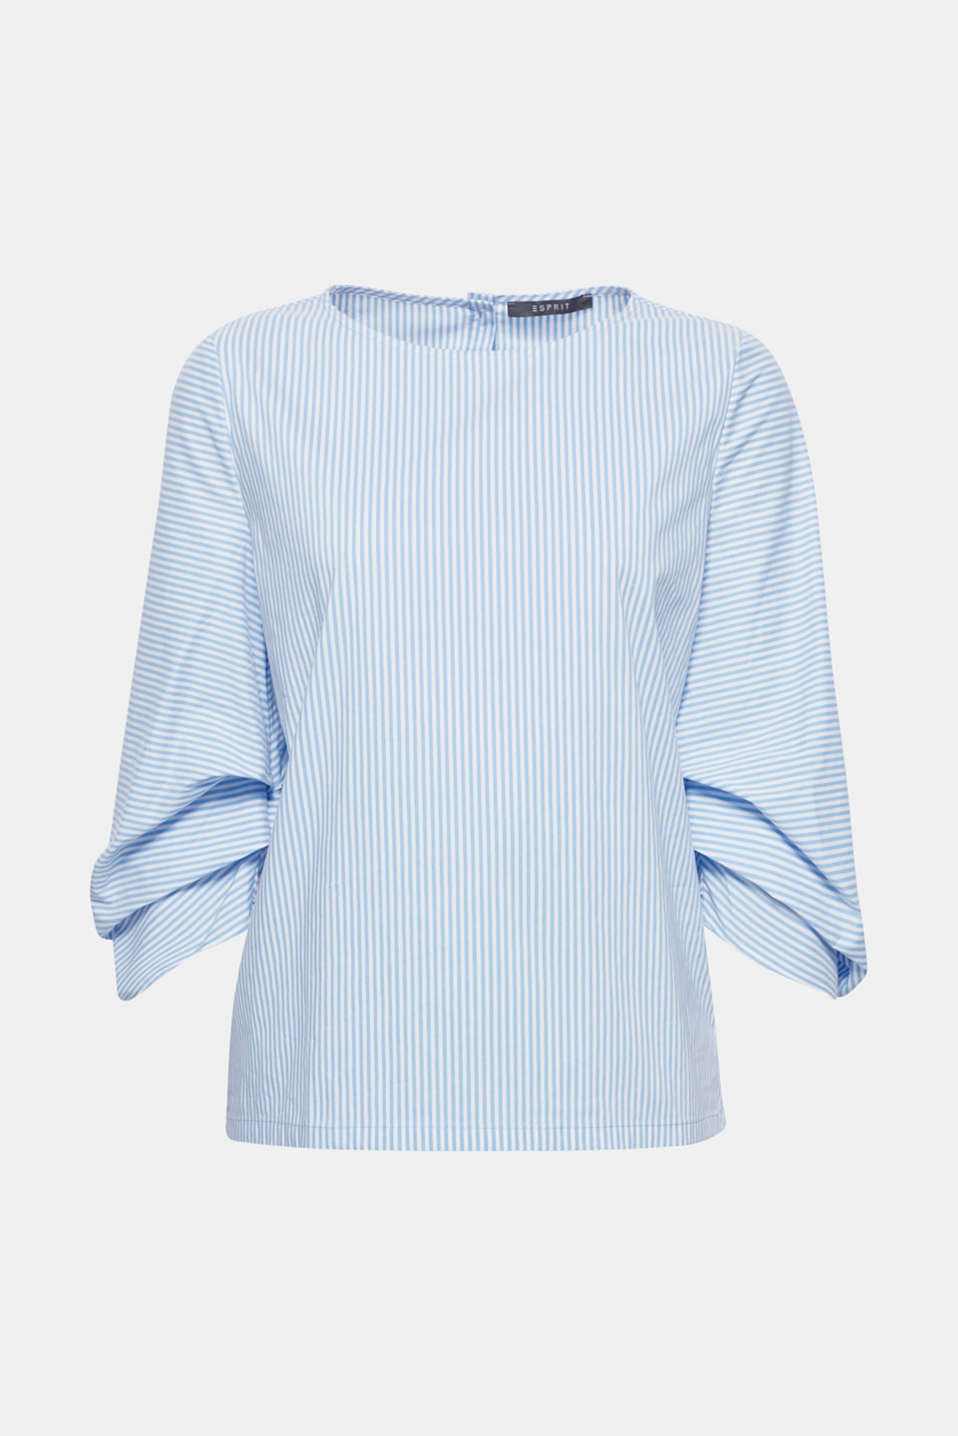 Adorable, reinterpreted stripes: on this stretch blouse featuring voluminous, pleated three-quarter length sleeves and a back button placket!